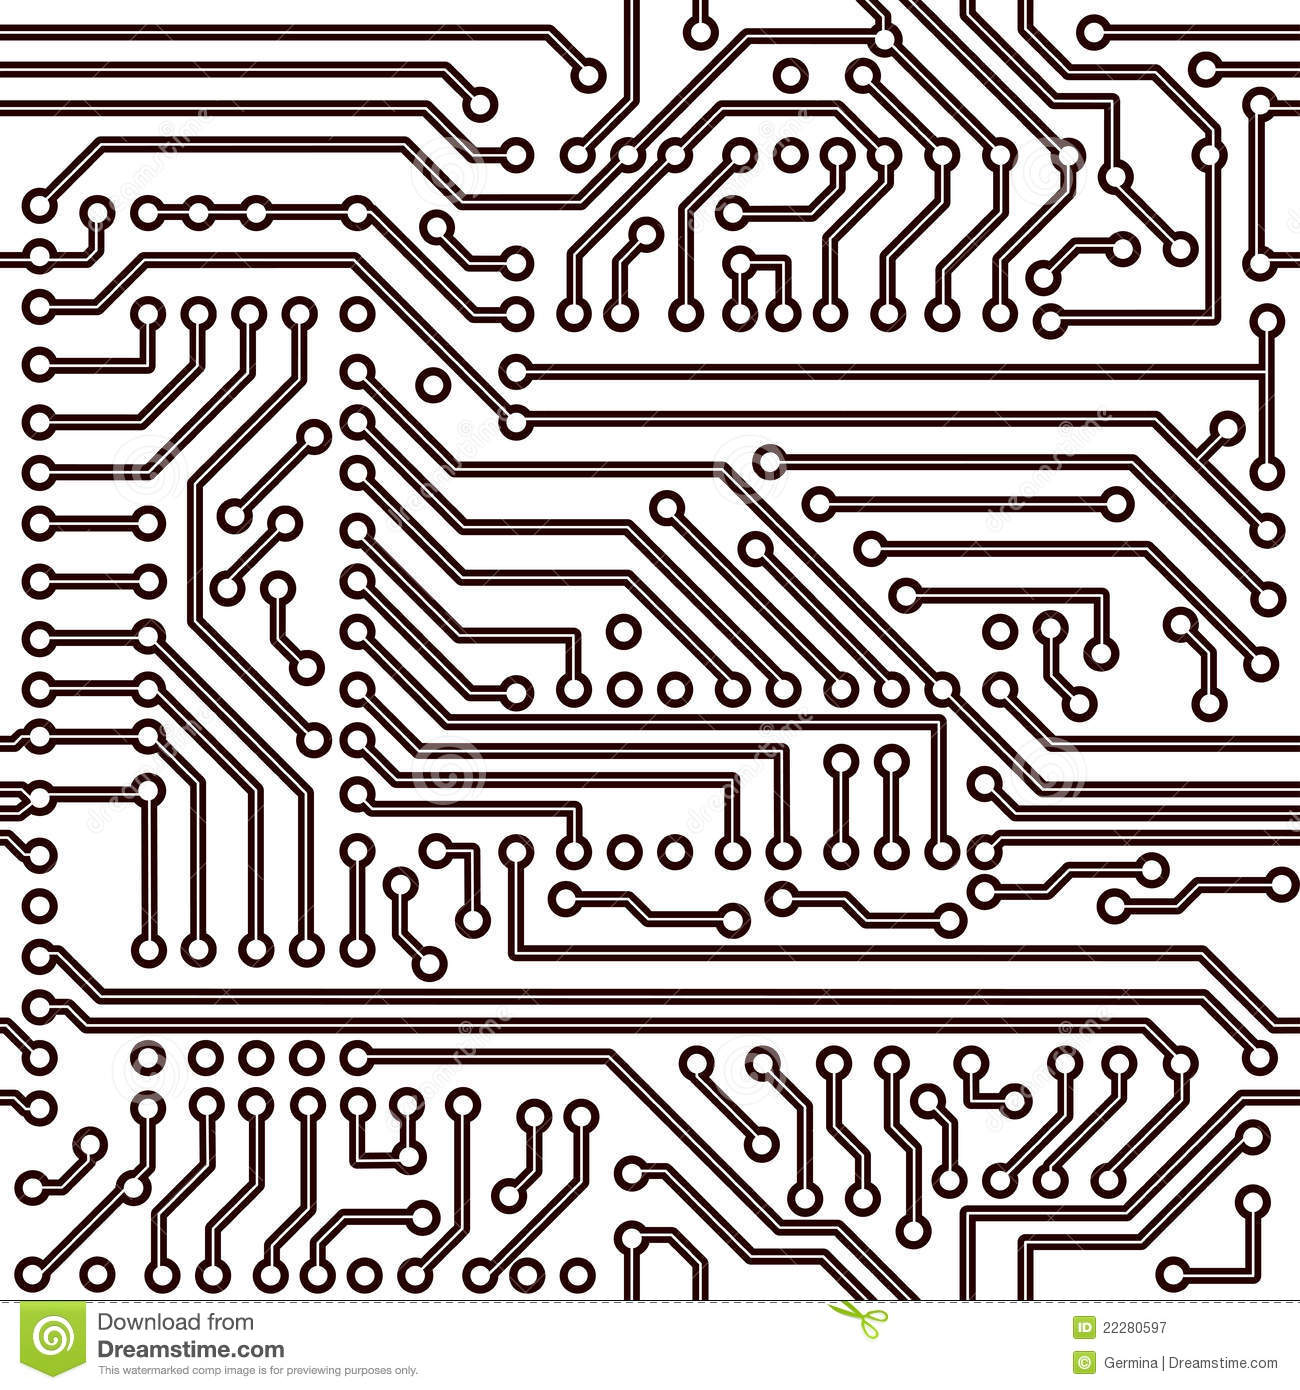 Vector Seamless Pattern - Electronic Circuit Board Stock Vector ...